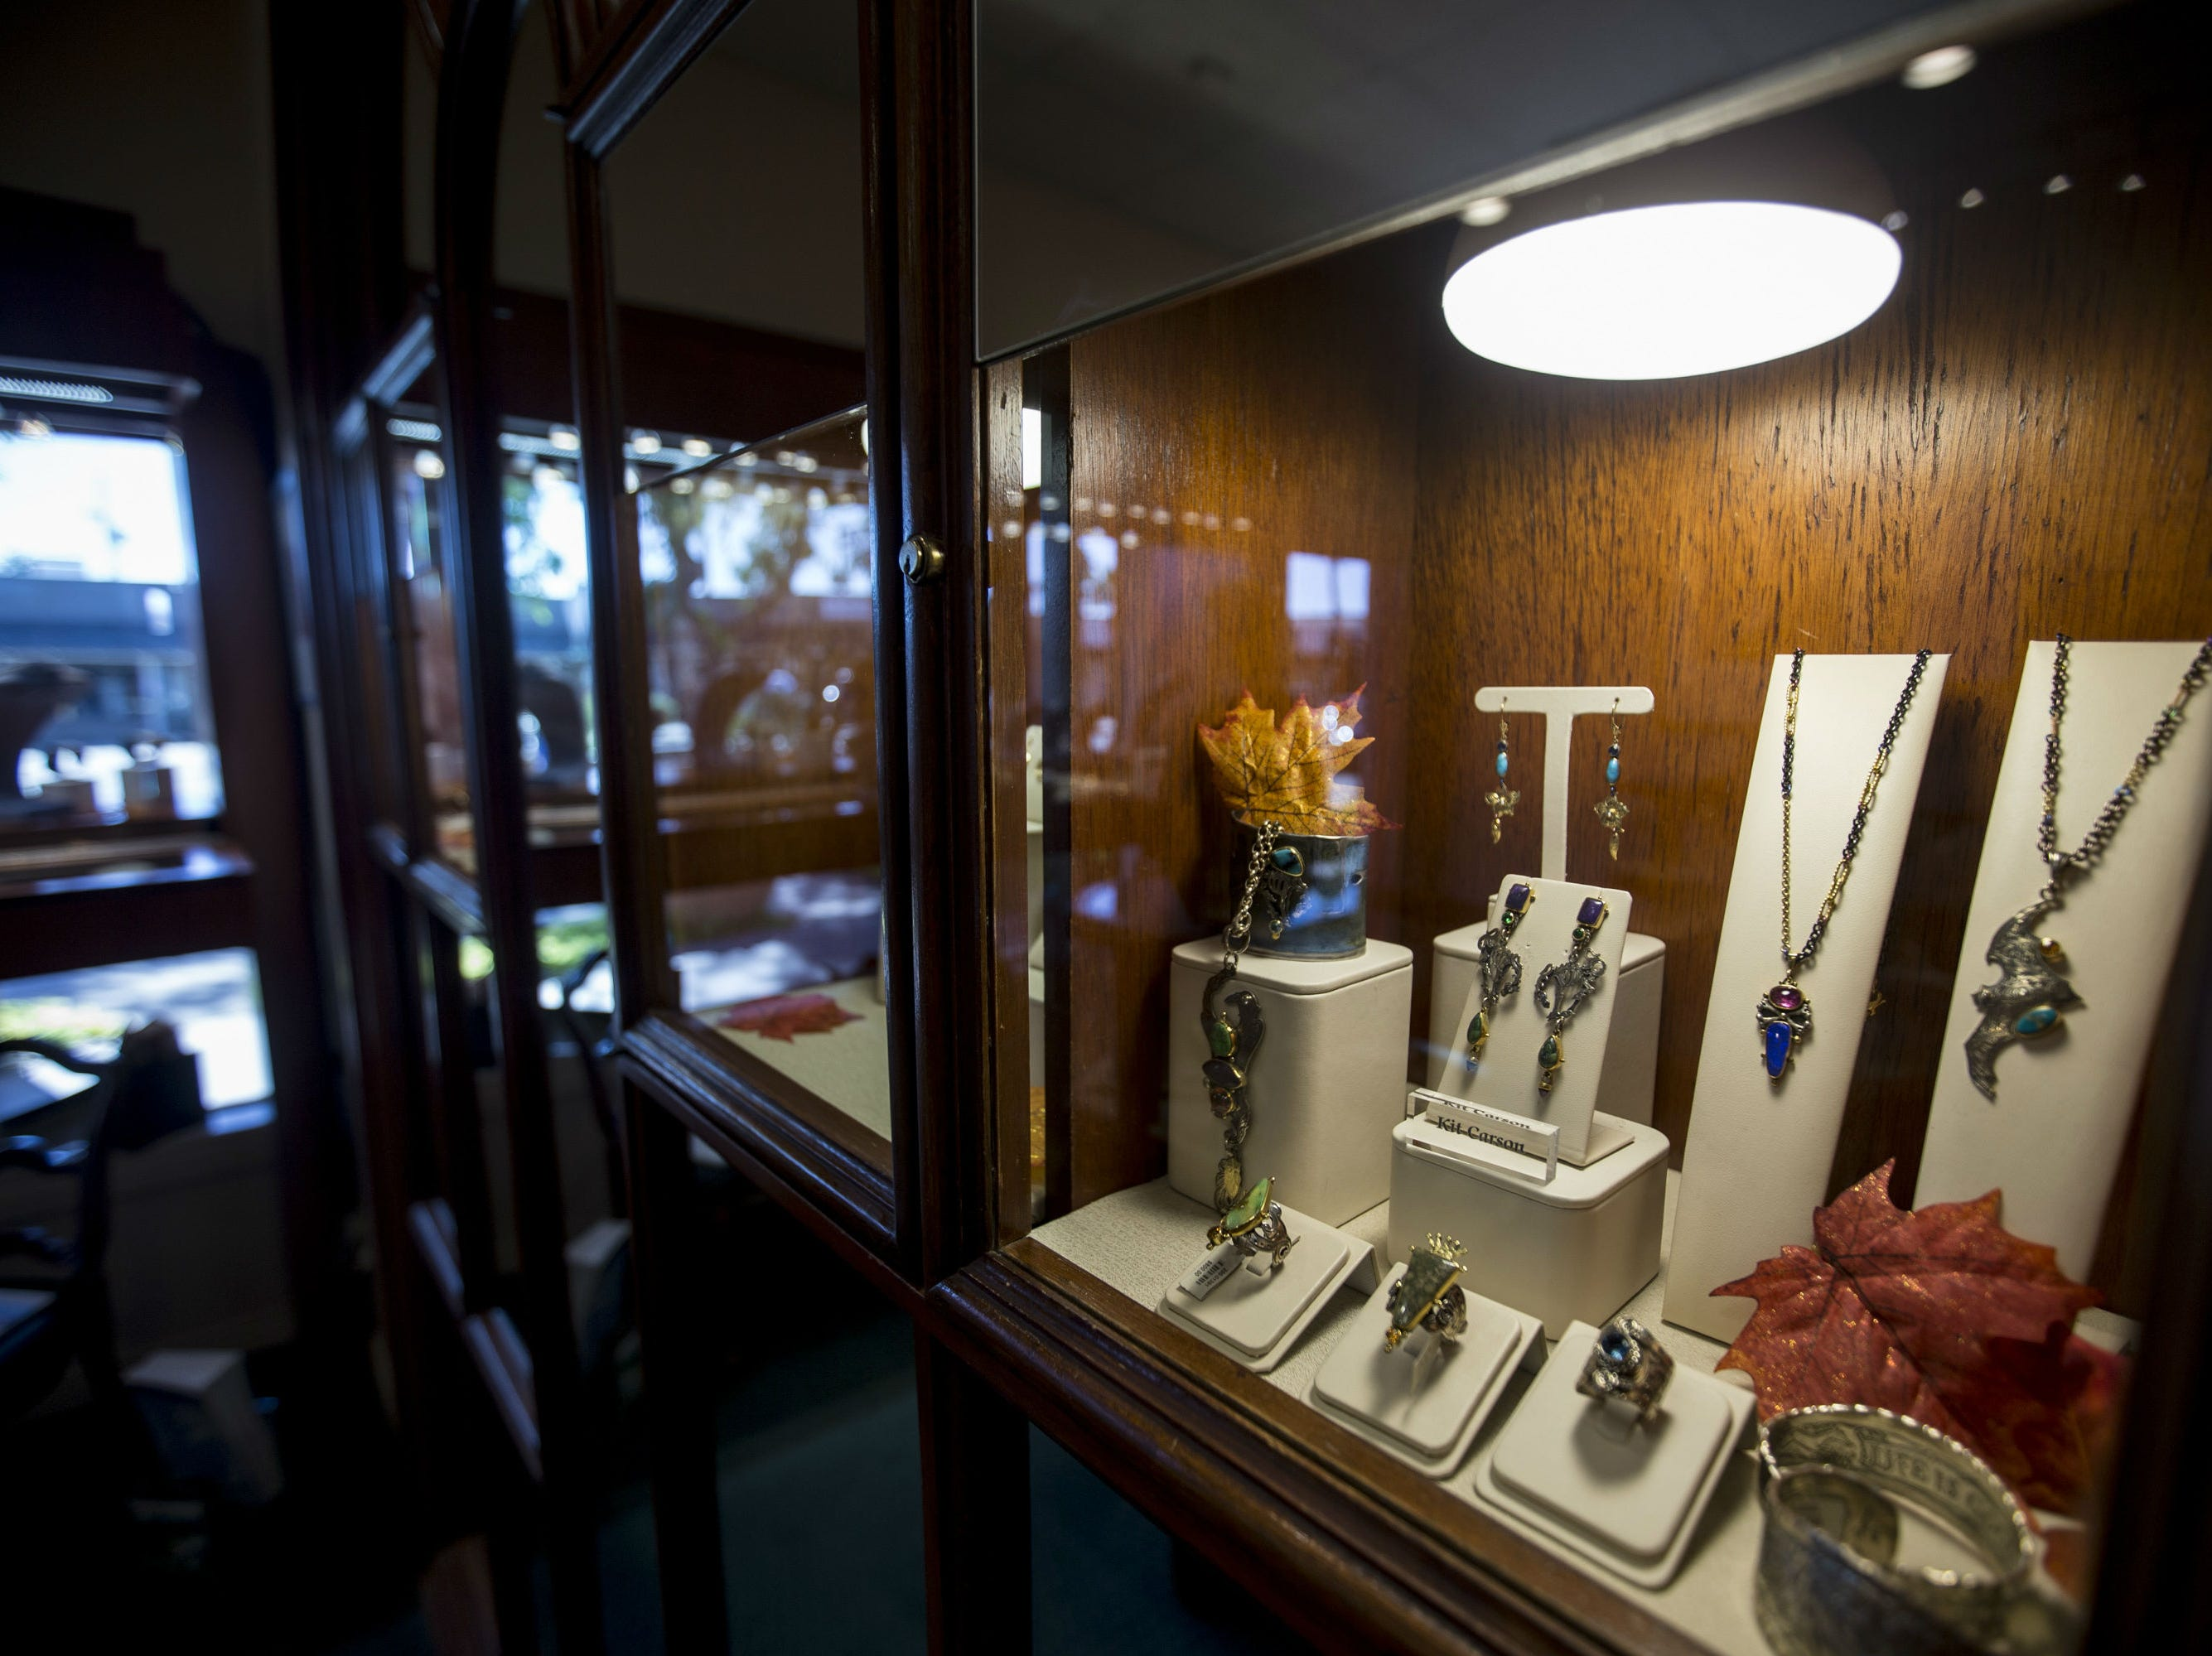 French Designer Jeweler in Scottsdale features handmade and many are one-of-a-kind pieces.